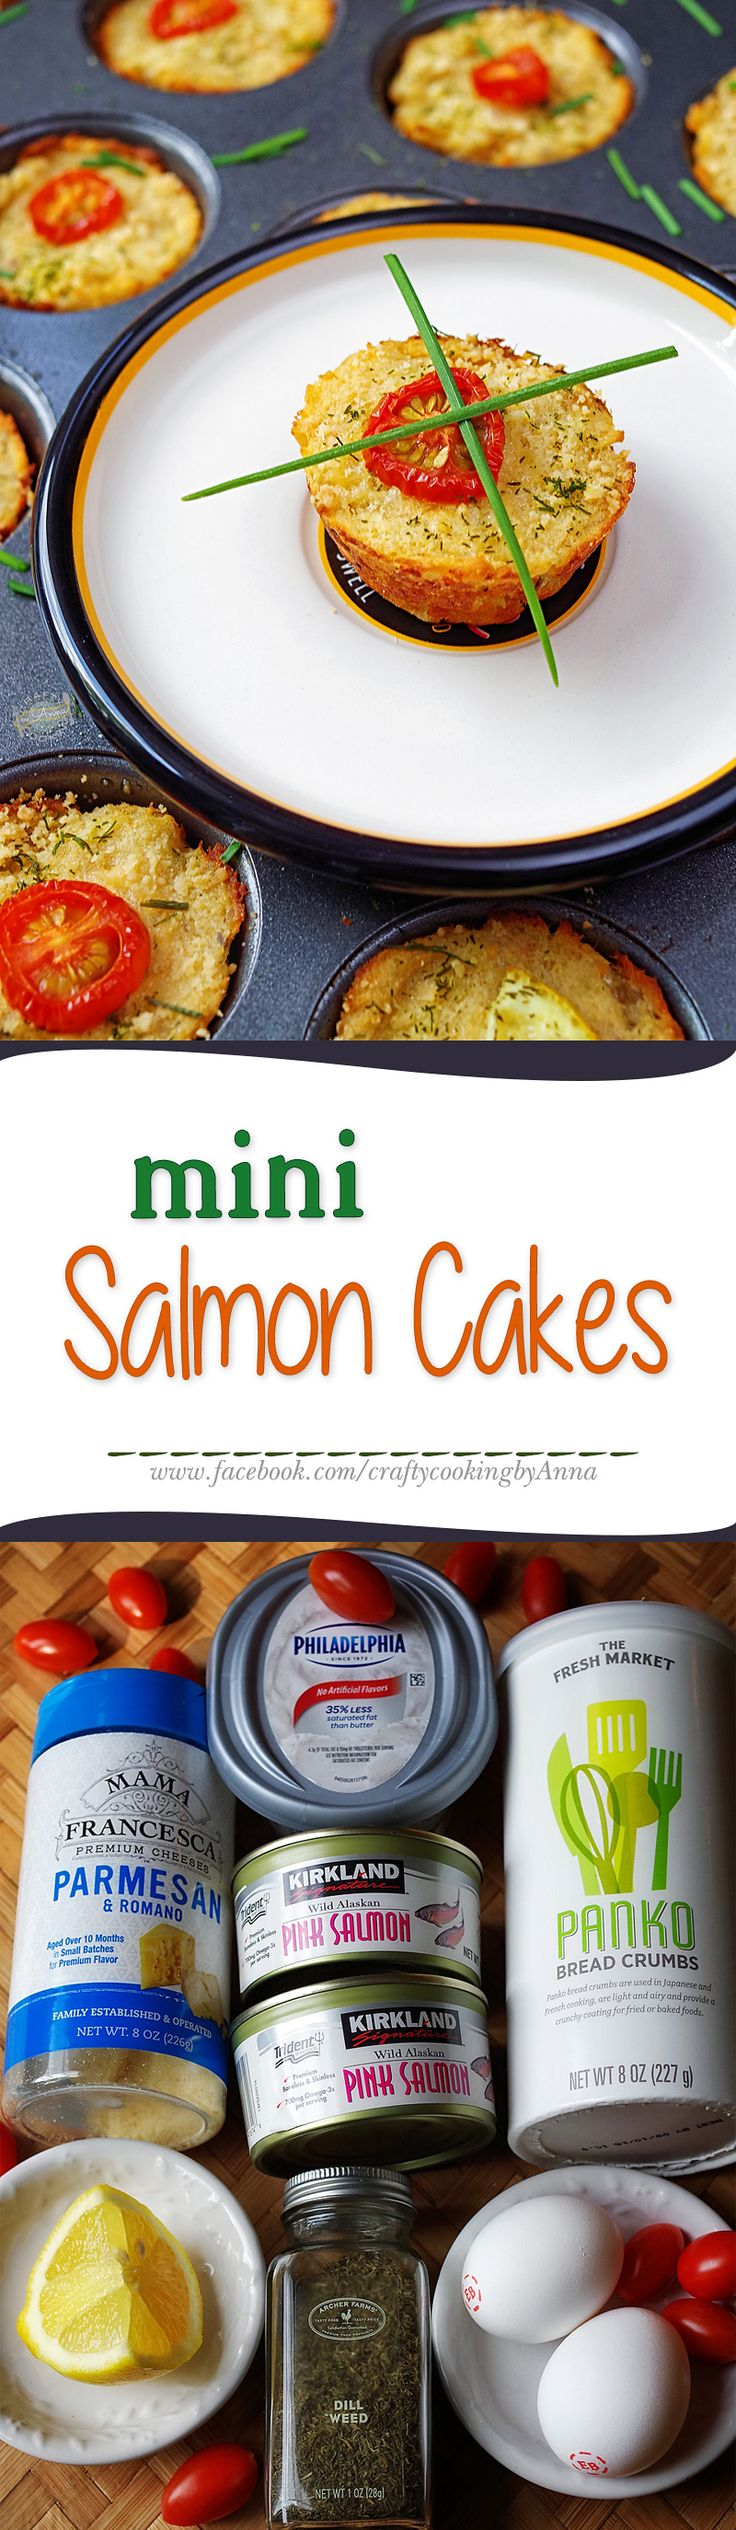 Mini Salmon Cakes! #Easy #Delicious #Everyday #Beautiful #Homecooking #Recipes #Dinner #Breakfast #Lunch #Kids #Foddie #Food #Fresh #Foodfollol #Low-Carb #Low-Cal #Yum #yummy #foodlover #tasty #foodheaven #Hungry #FollowMe #CraftyCookingByAnna If you like my recipes, please Follow Me - http://www.pinterest.com/annavil/ and https://instagram.com/craftycookingbyanna/ and Join Me -https://www.facebook.com/craftycookingbyAnna Thank you!